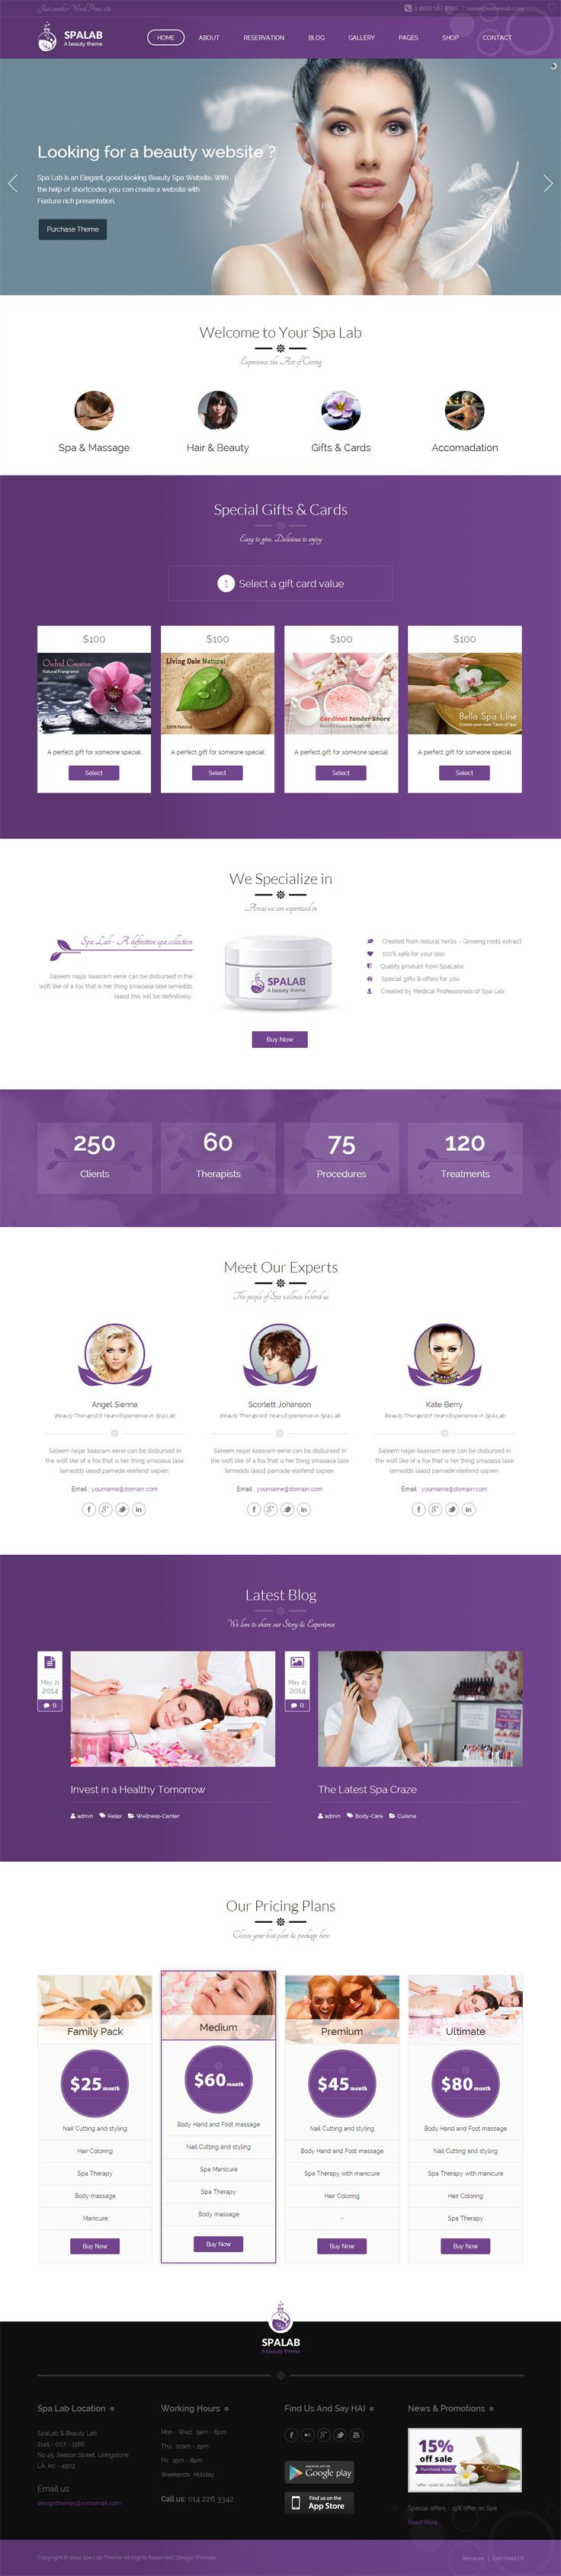 Spa Lab is a hand crafted Beauty Salon WordPress Theme for hair salons, wellness centre, yoga / meditation classes and all other health care businesses. The theme includes essential advanced features such as two types of menu card designs, therapies, reservation, gift card, product and shop and many more…